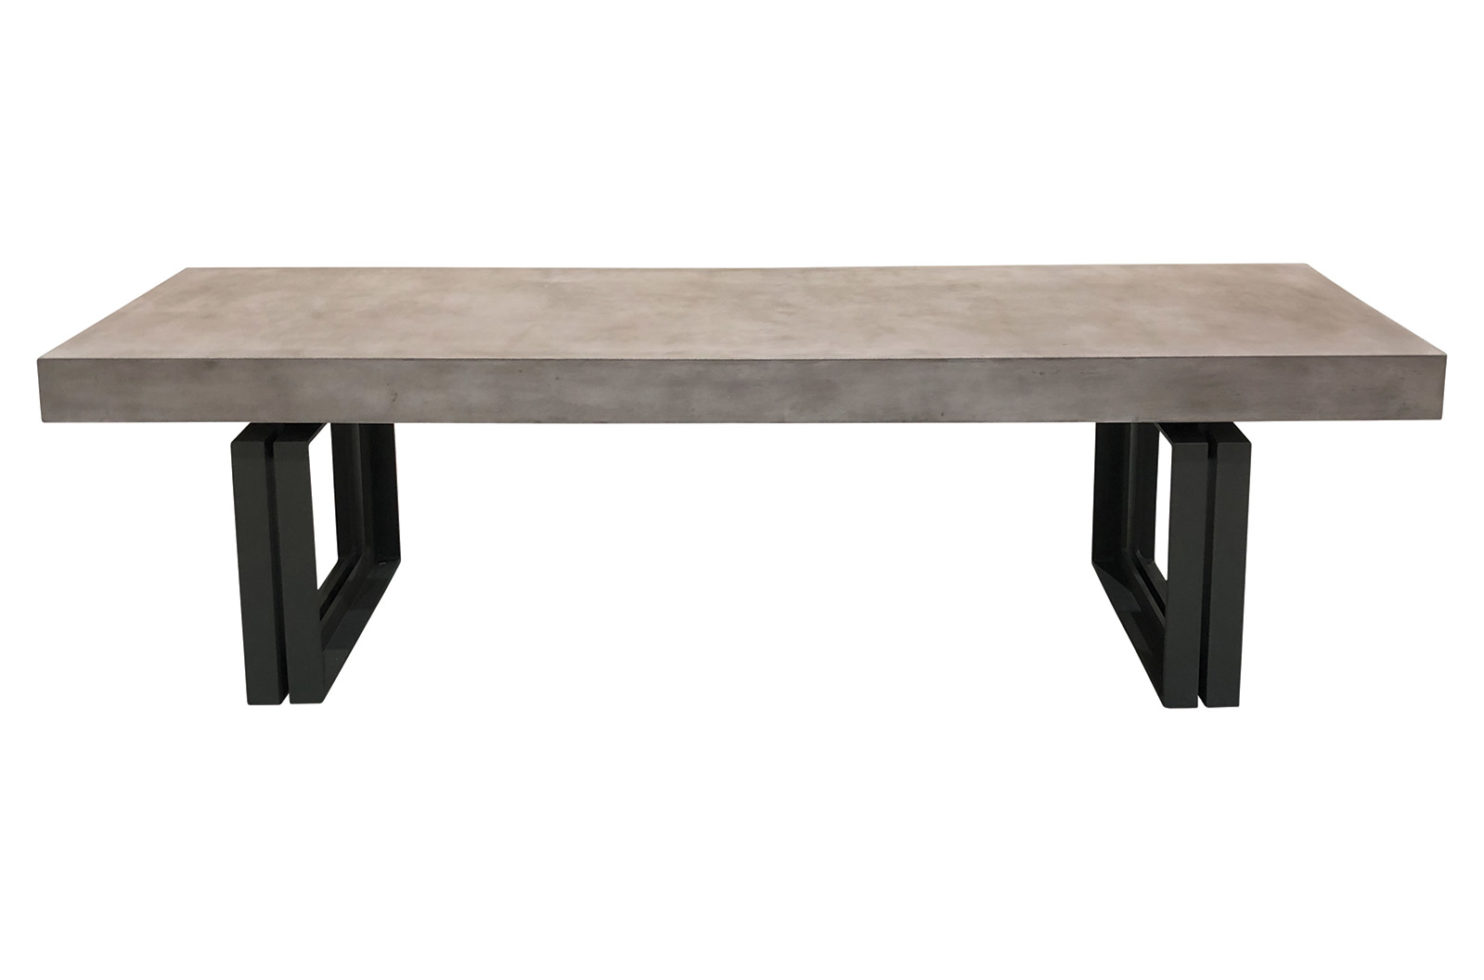 Perpetual senza bench 501FT183P2G 1 front